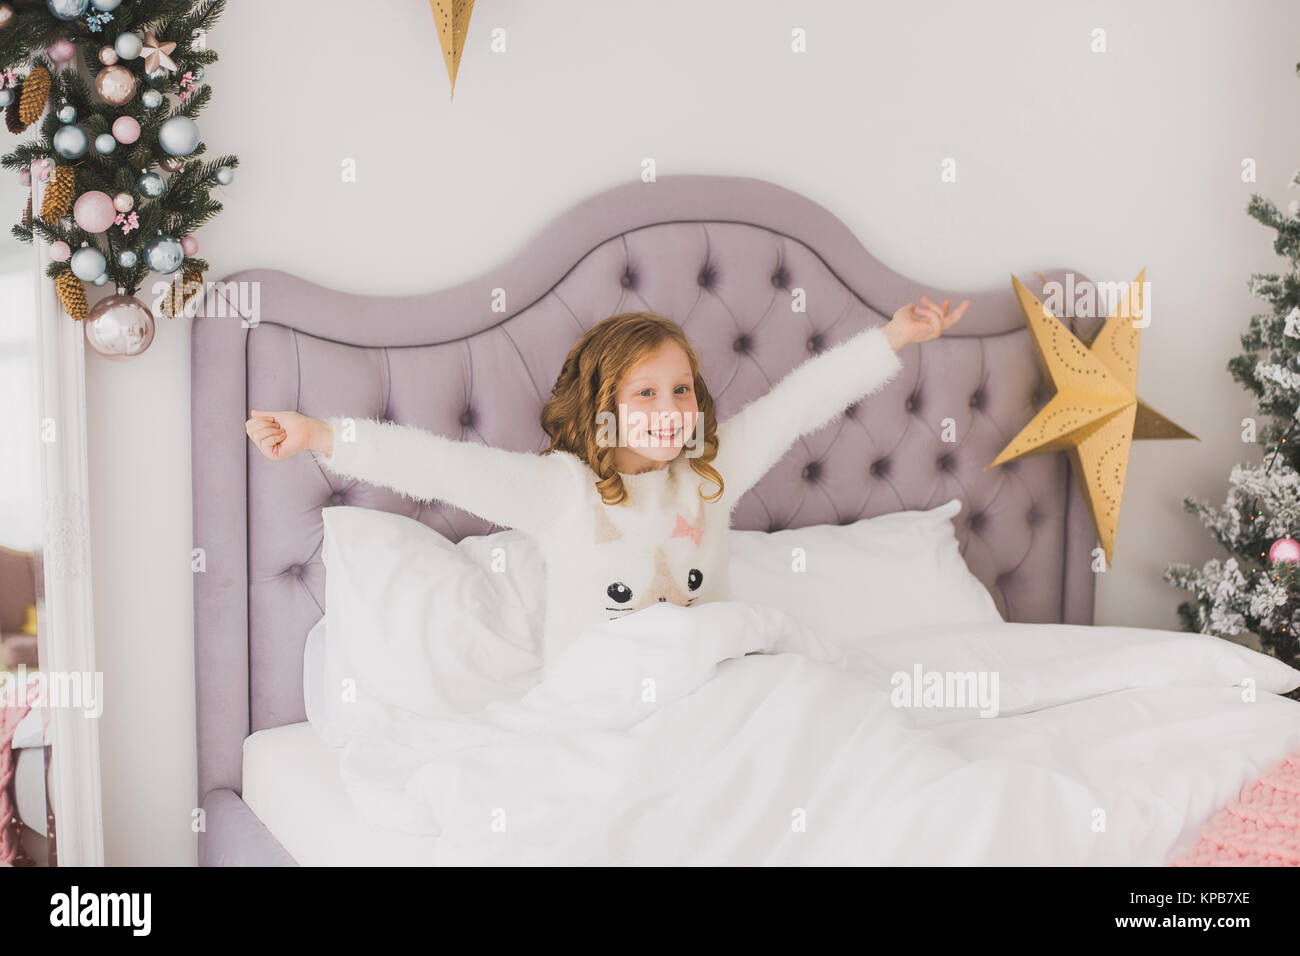 Portrait of cute funny little girl on Christmas morning in white home interior. Child cheerfully sitting in bed. - Stock Image